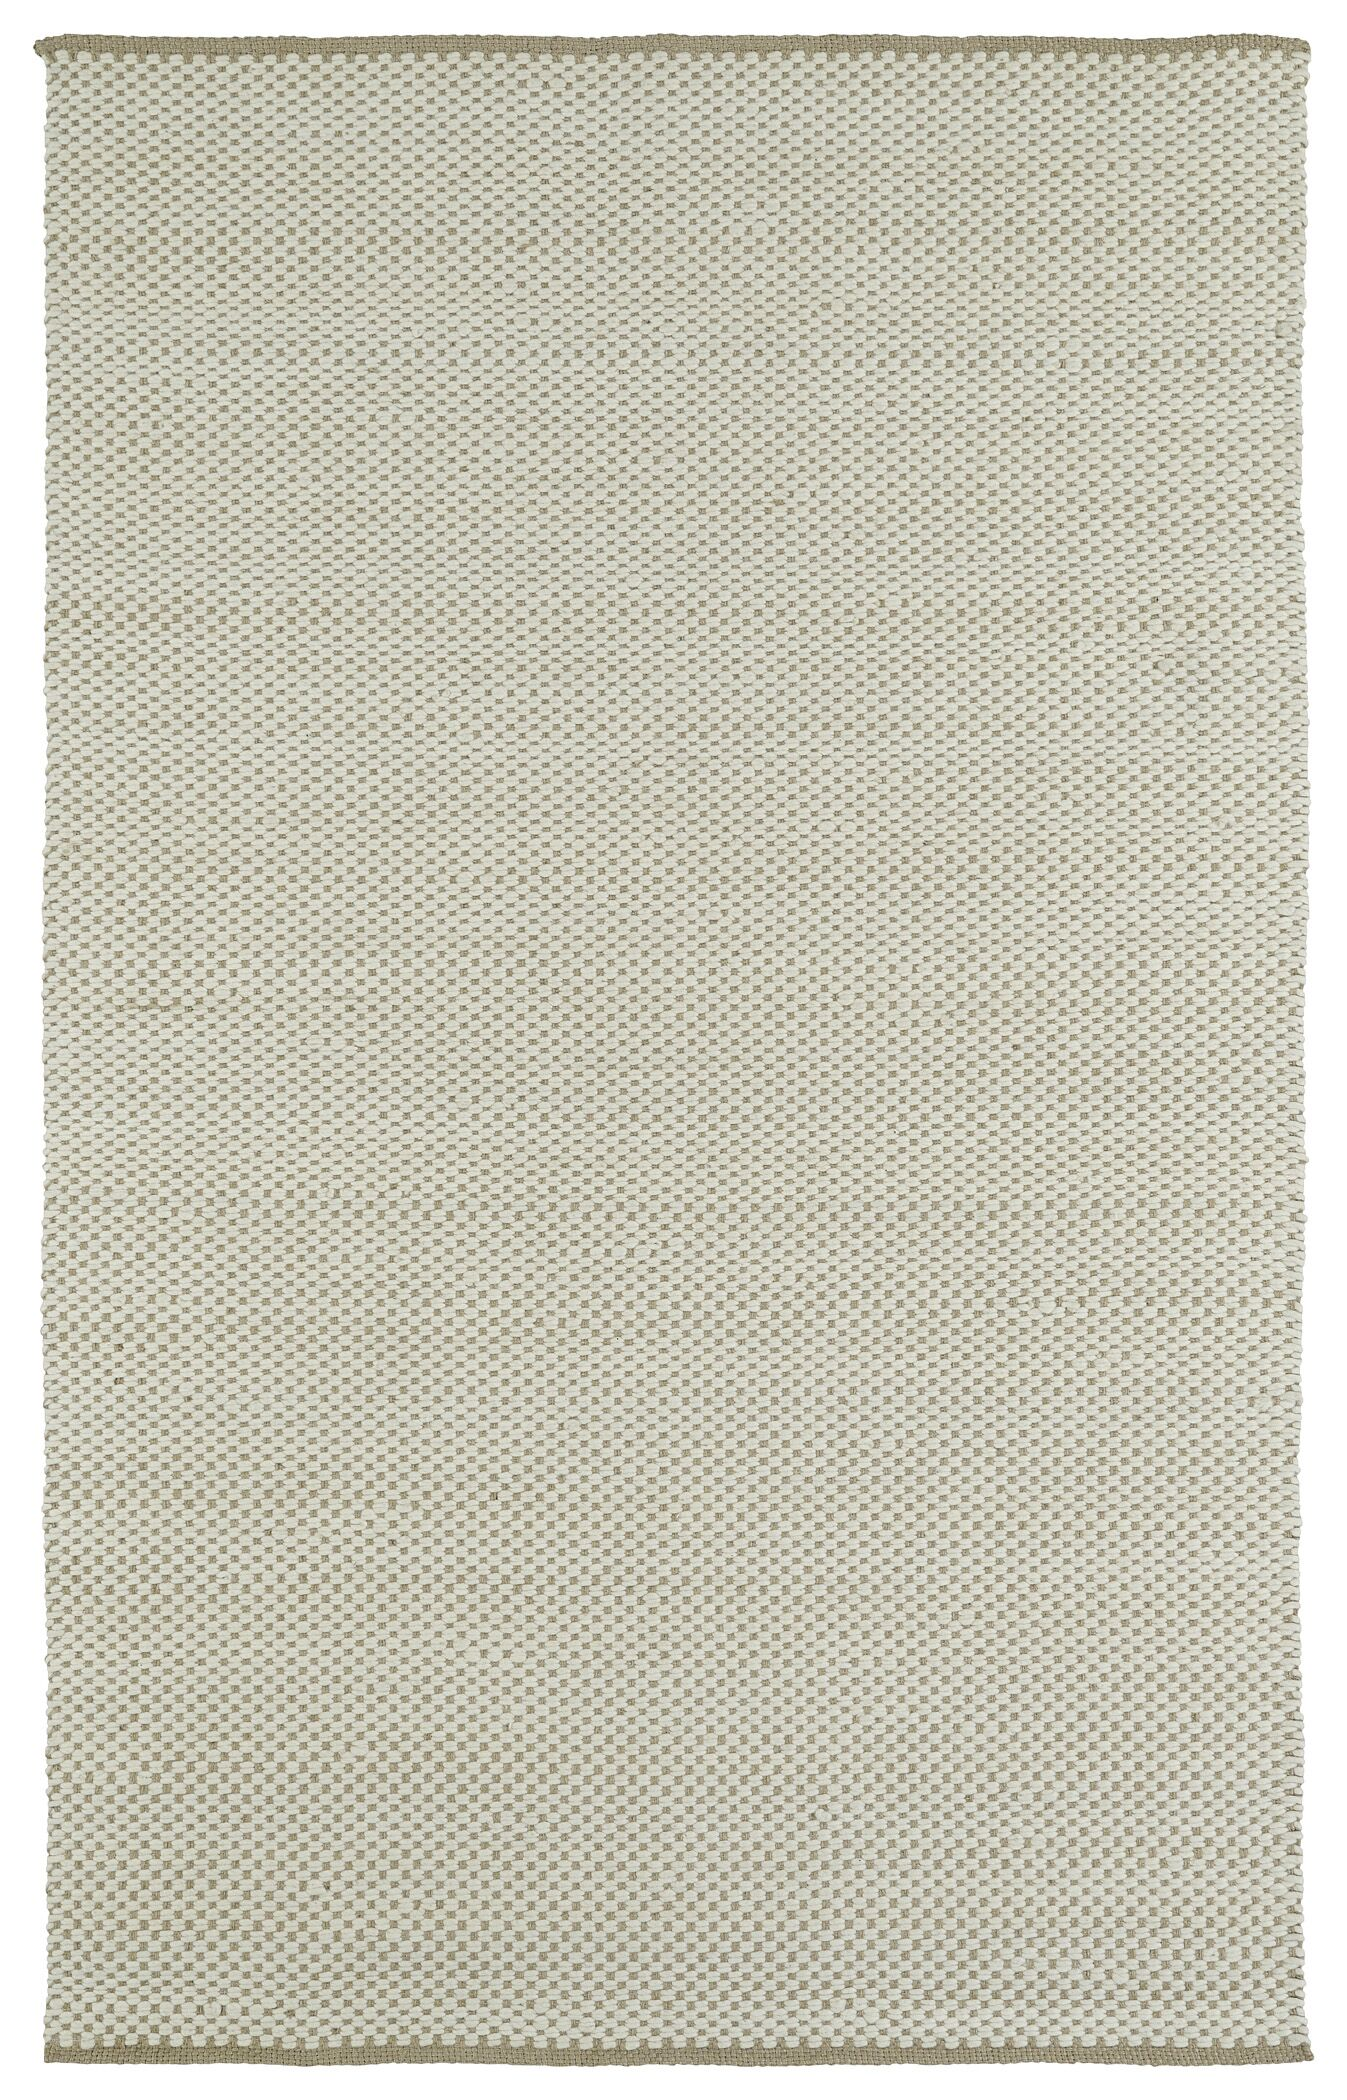 Emilia Camel Area Rug Rug Size: Rectangle 8' x 10'